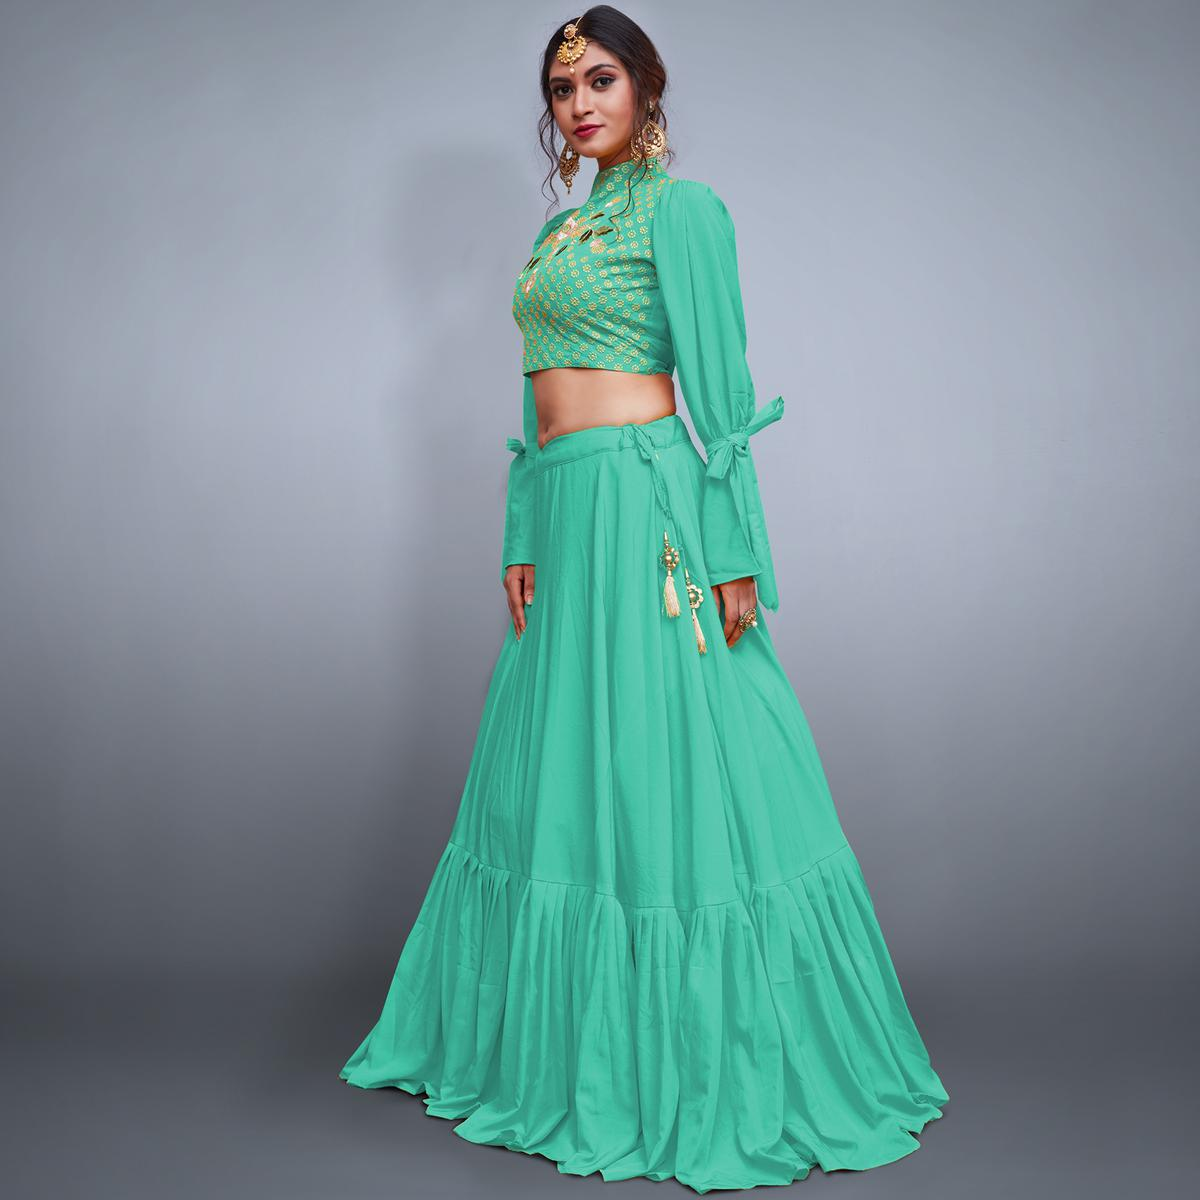 1e70275c1f Buy Excellent Sea Green Colored Party Wear Fancy Crepe Lehenga Choli For  womens online India, Best Prices, Reviews - Peachmode